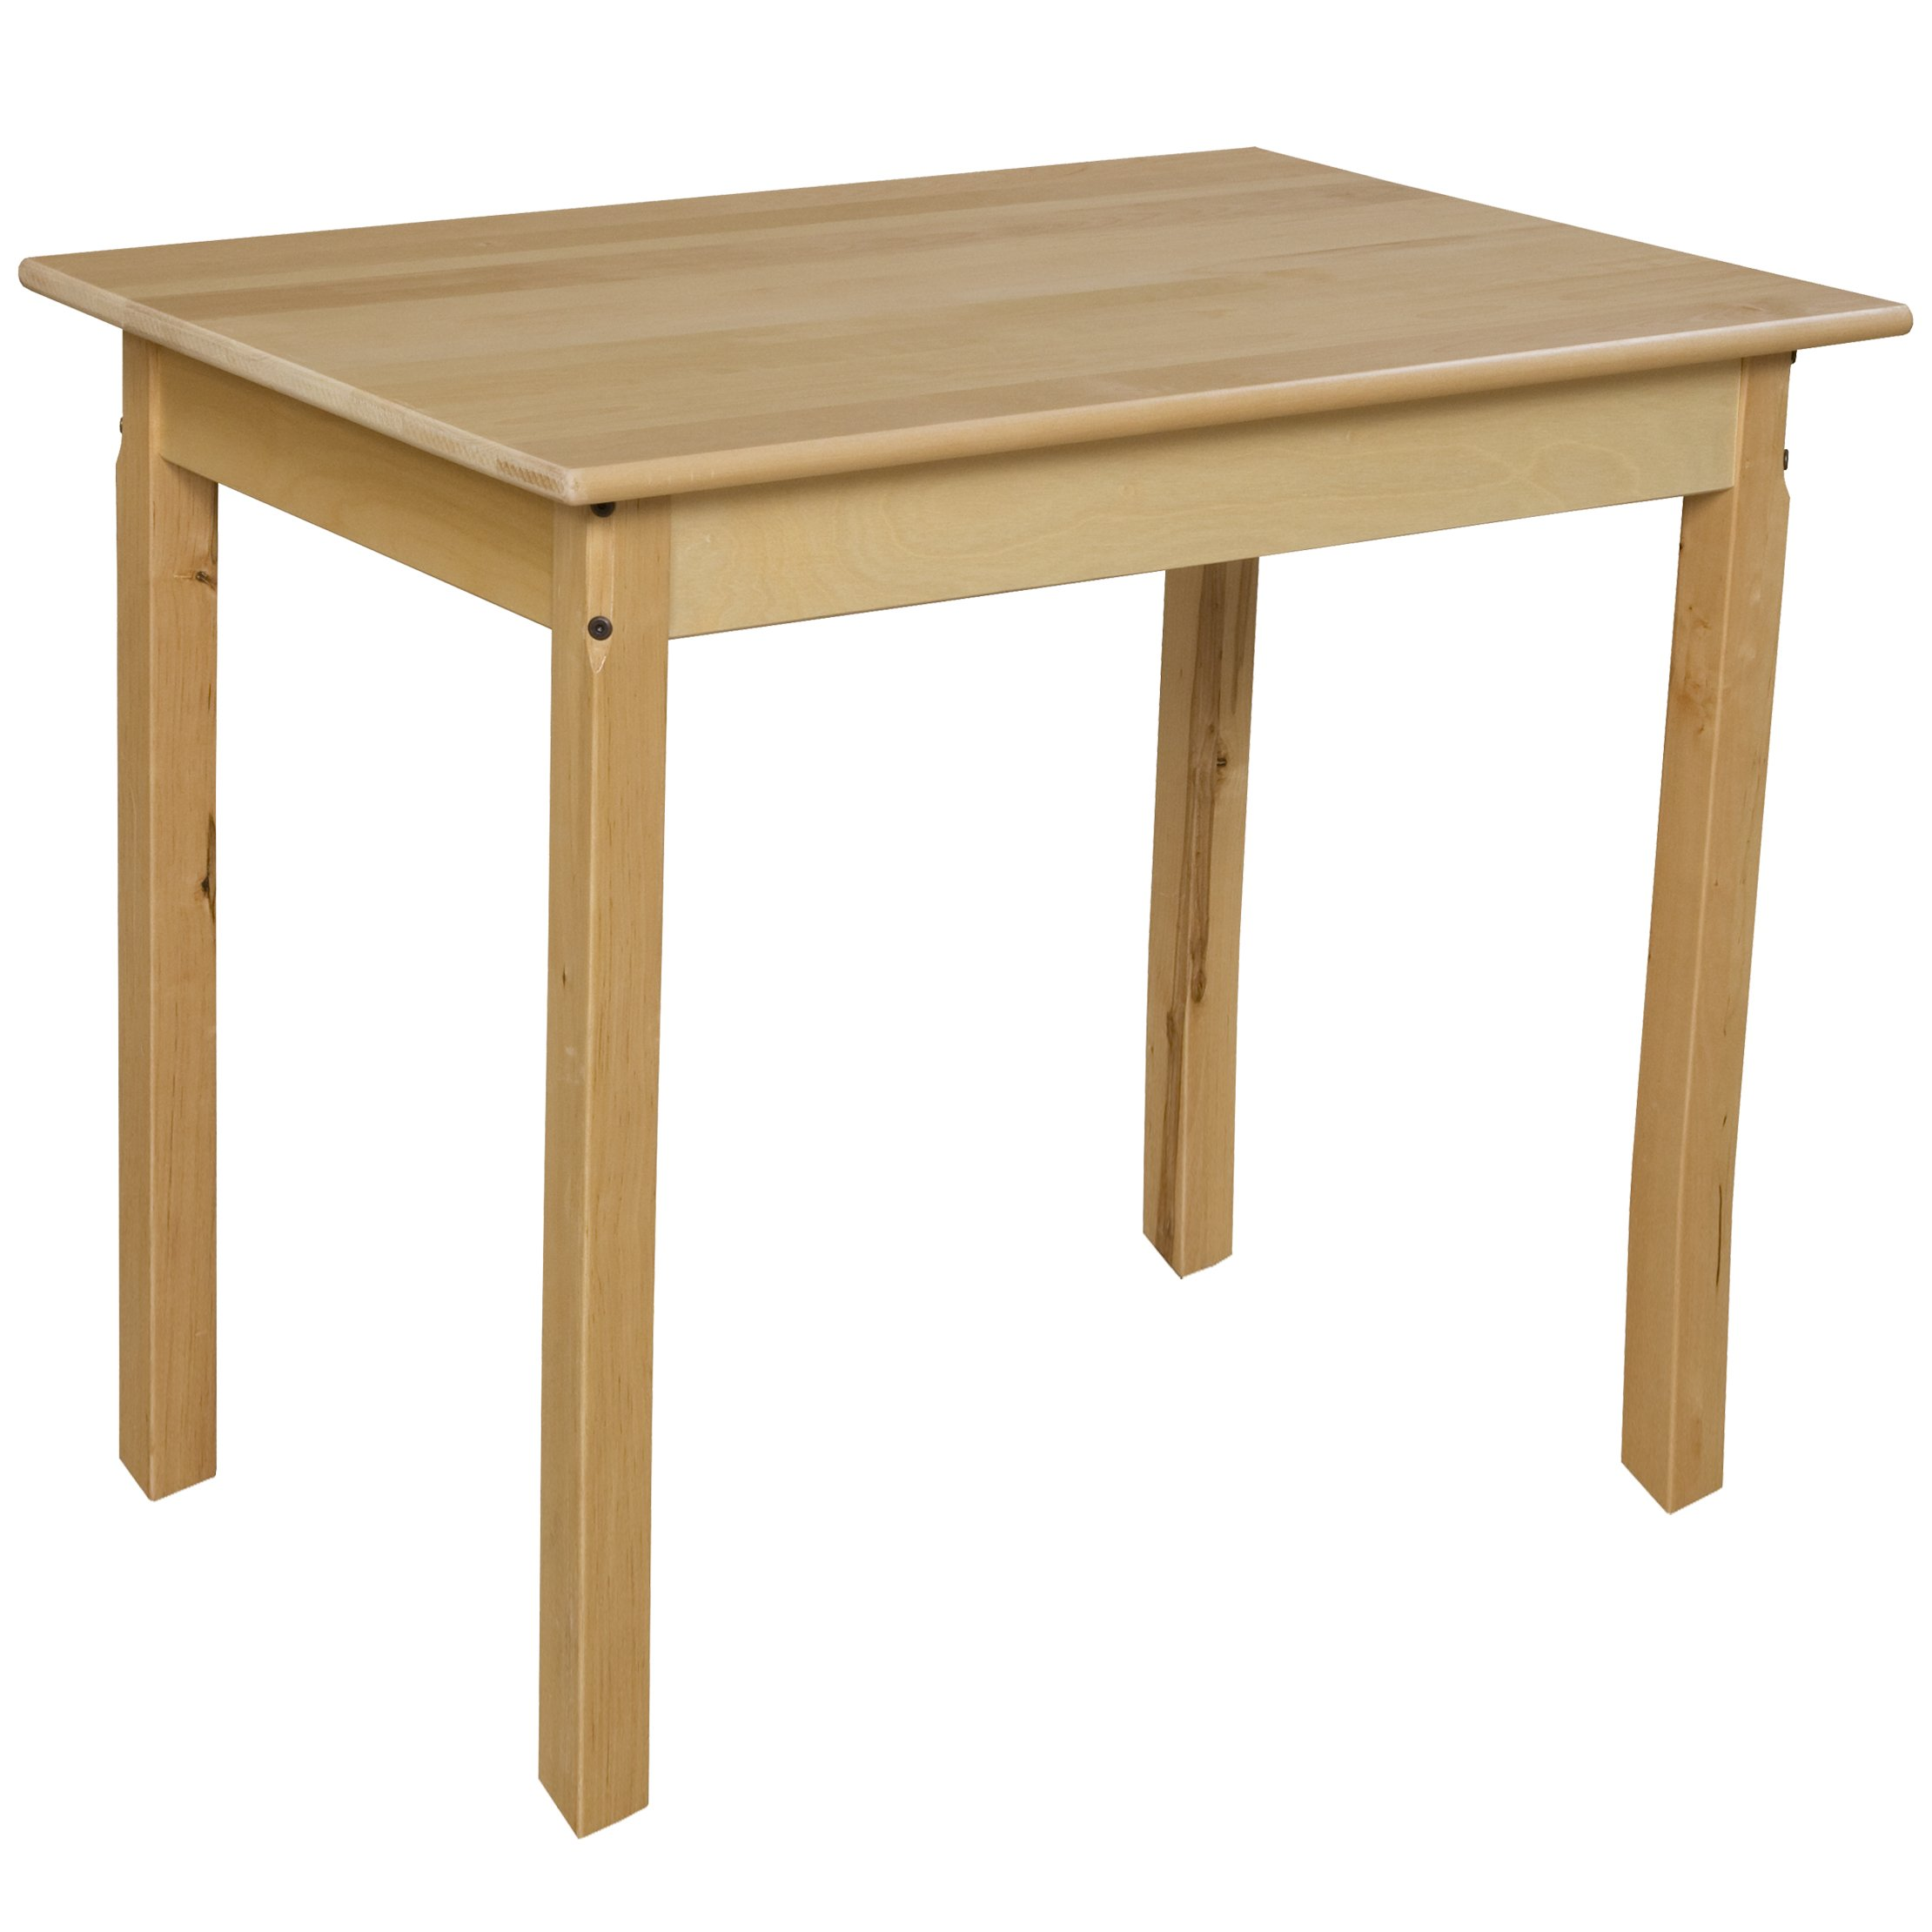 Wood Designs WD82329 Rectangle Hardwood Table with 29'' Legs, 24'' x 36'', Natural